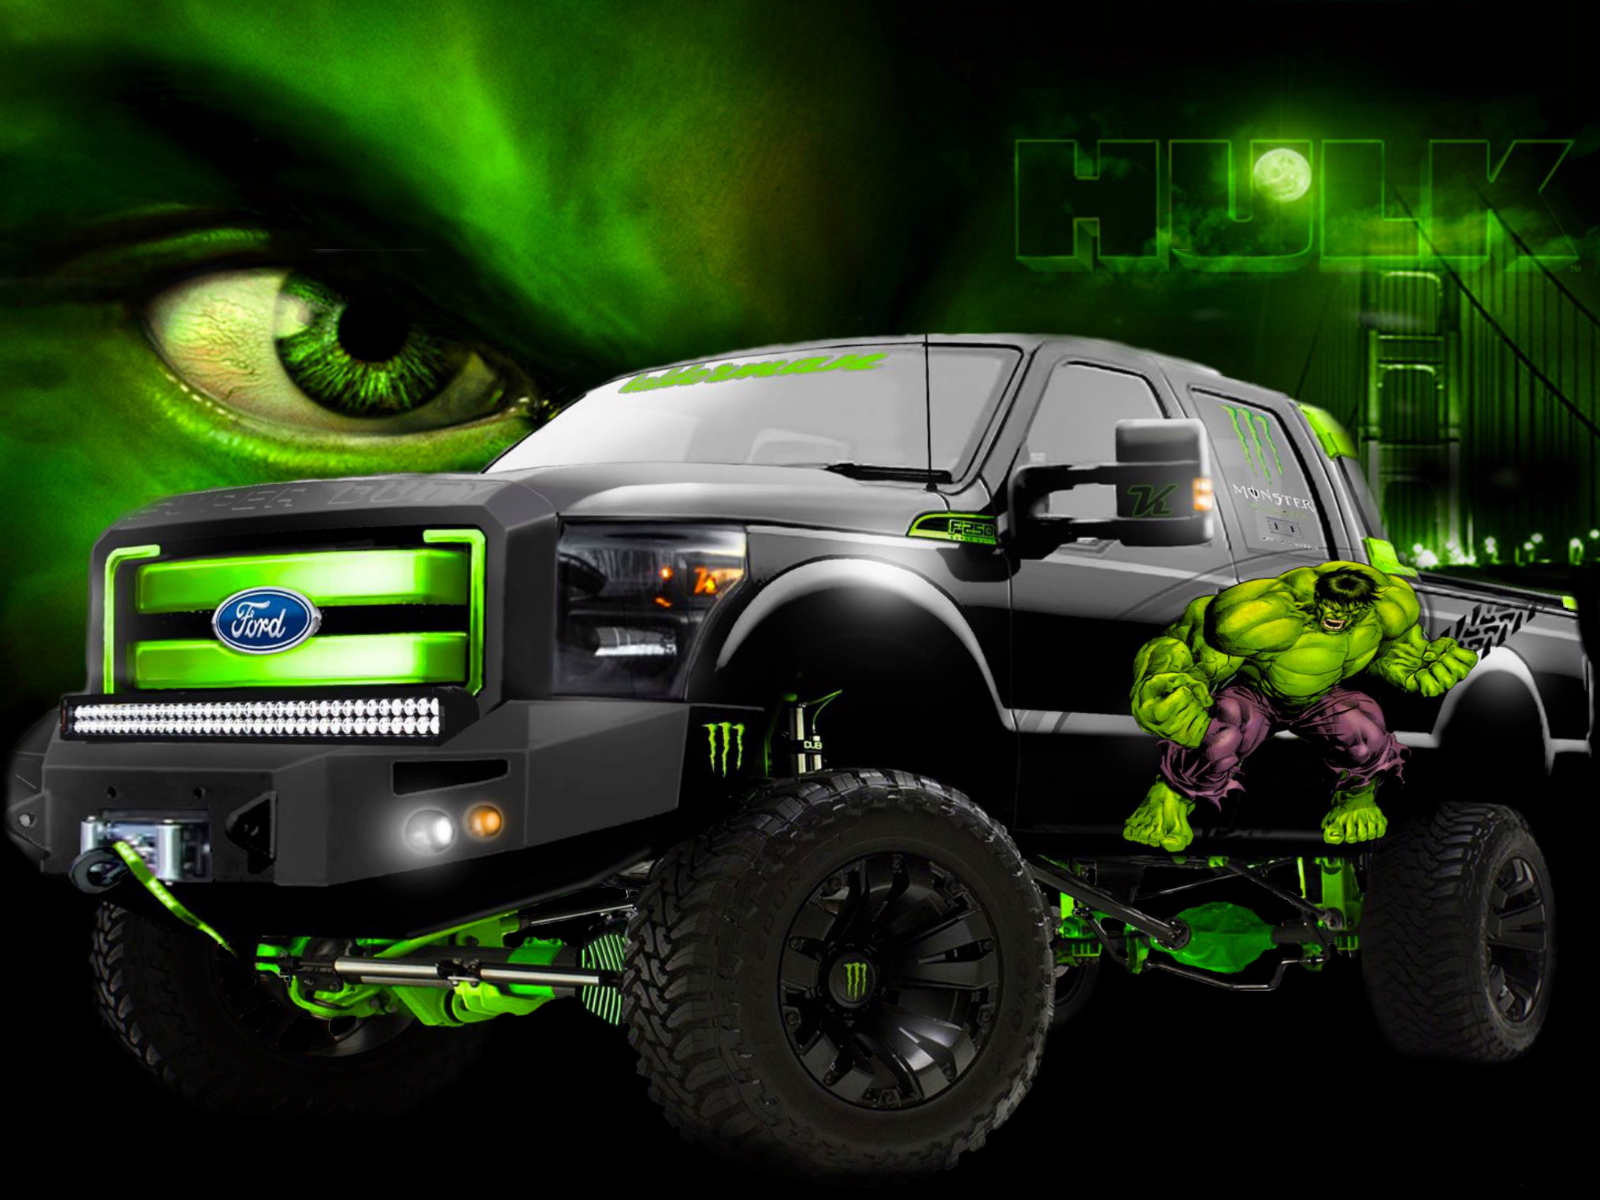 Vehicles monster hulk trucks wallpaper | 1600x1200 ...